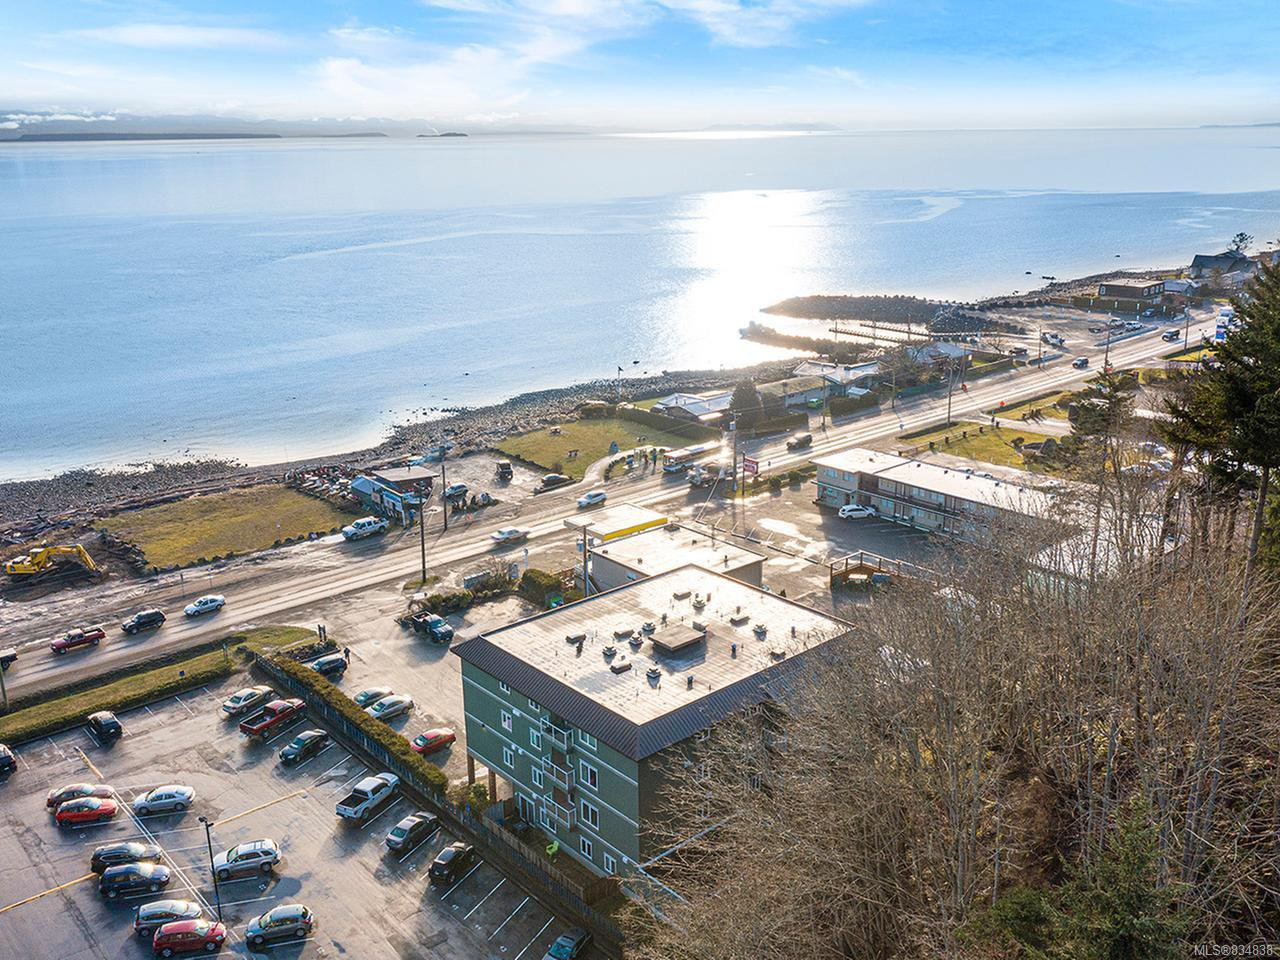 Photo 24: Photos: 301 894 S Island Hwy in CAMPBELL RIVER: CR Campbell River Central Condo for sale (Campbell River)  : MLS®# 834838